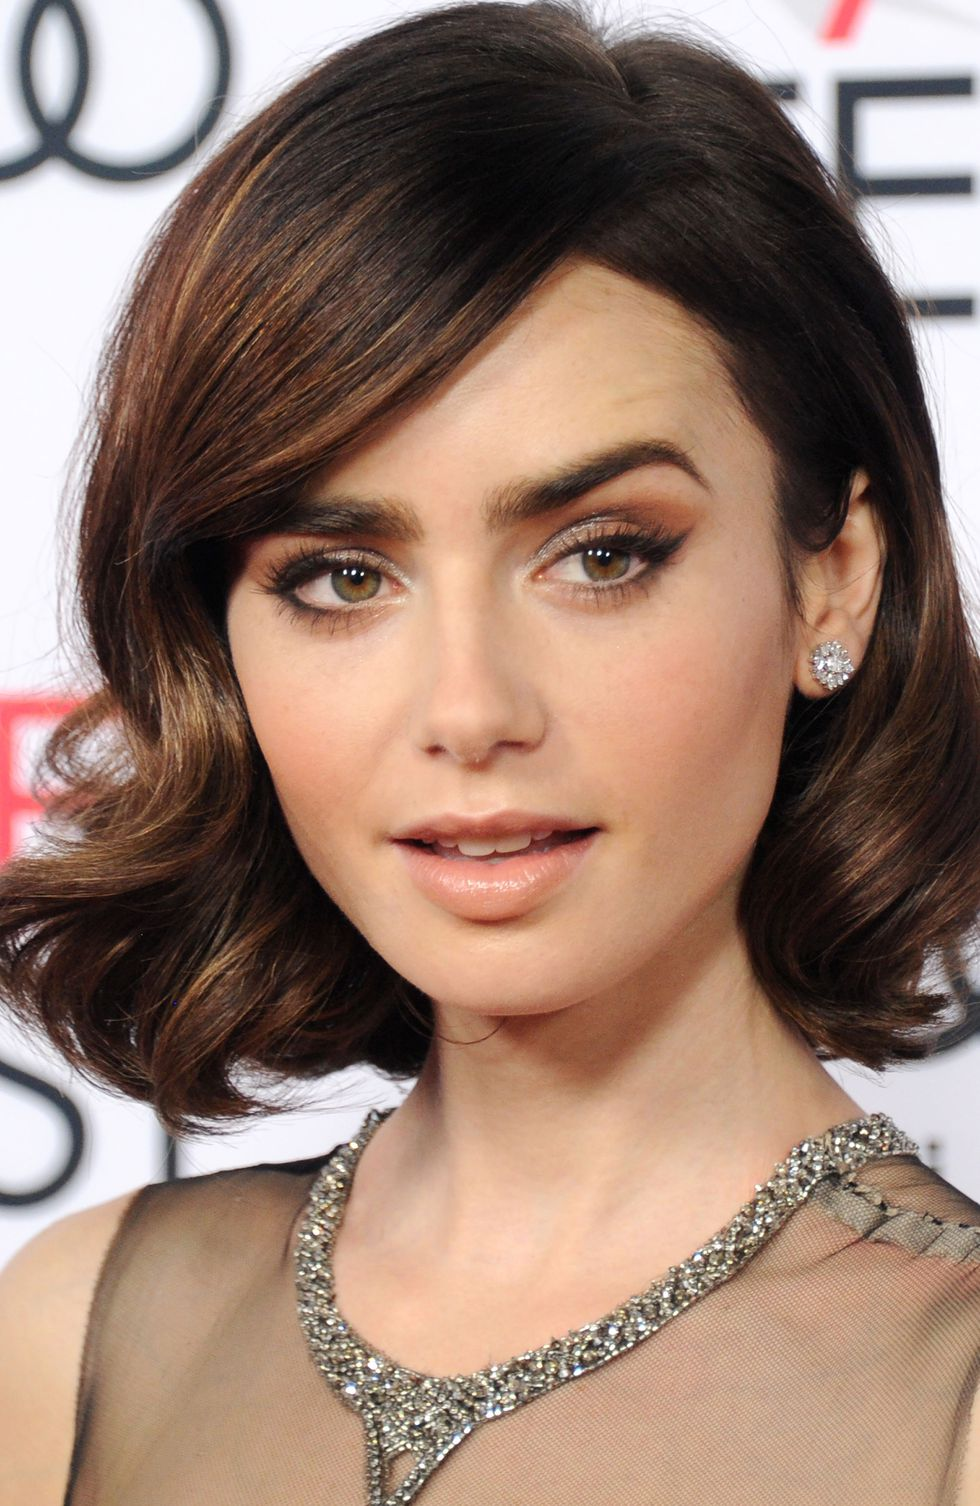 eyes-how-to-do-your-makeup-for-wedding-guest-beauty-liner-lilycollins-wavy-bob-hair.jpg